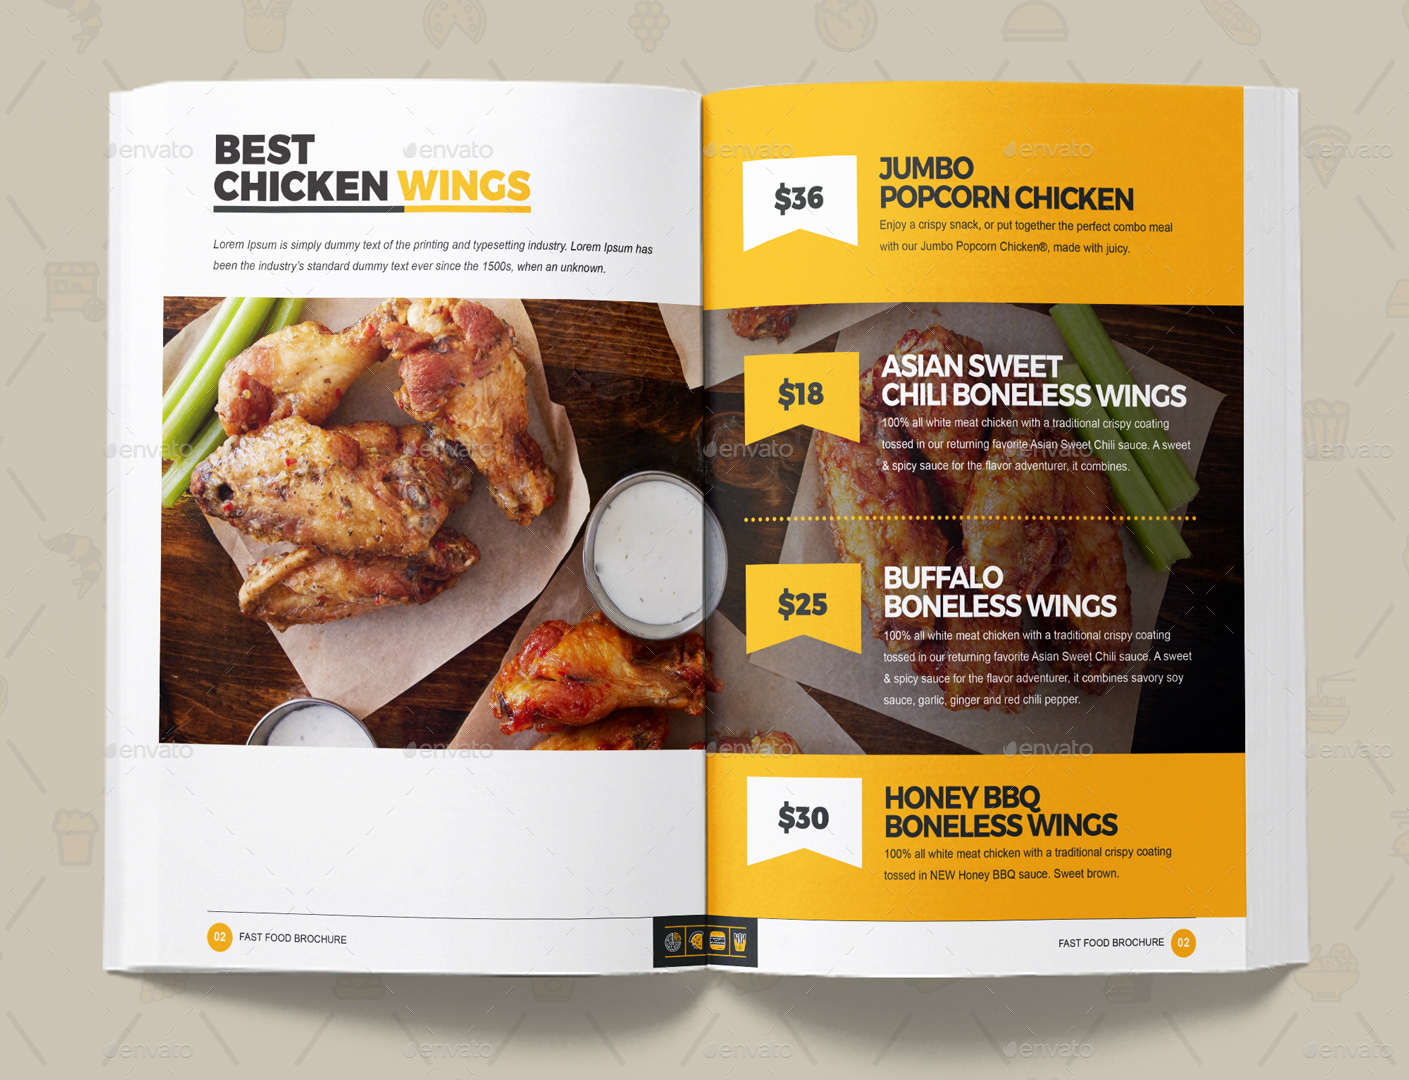 Invoicing Application Branding Identity For Fast Food  Restaurants  Cafe By Contestdesign Receipt For Private Car Sale Word with Sample Consulting Invoice Pdf  Image Setbestchickenwingsjpg  Receipt For Salmon Pdf